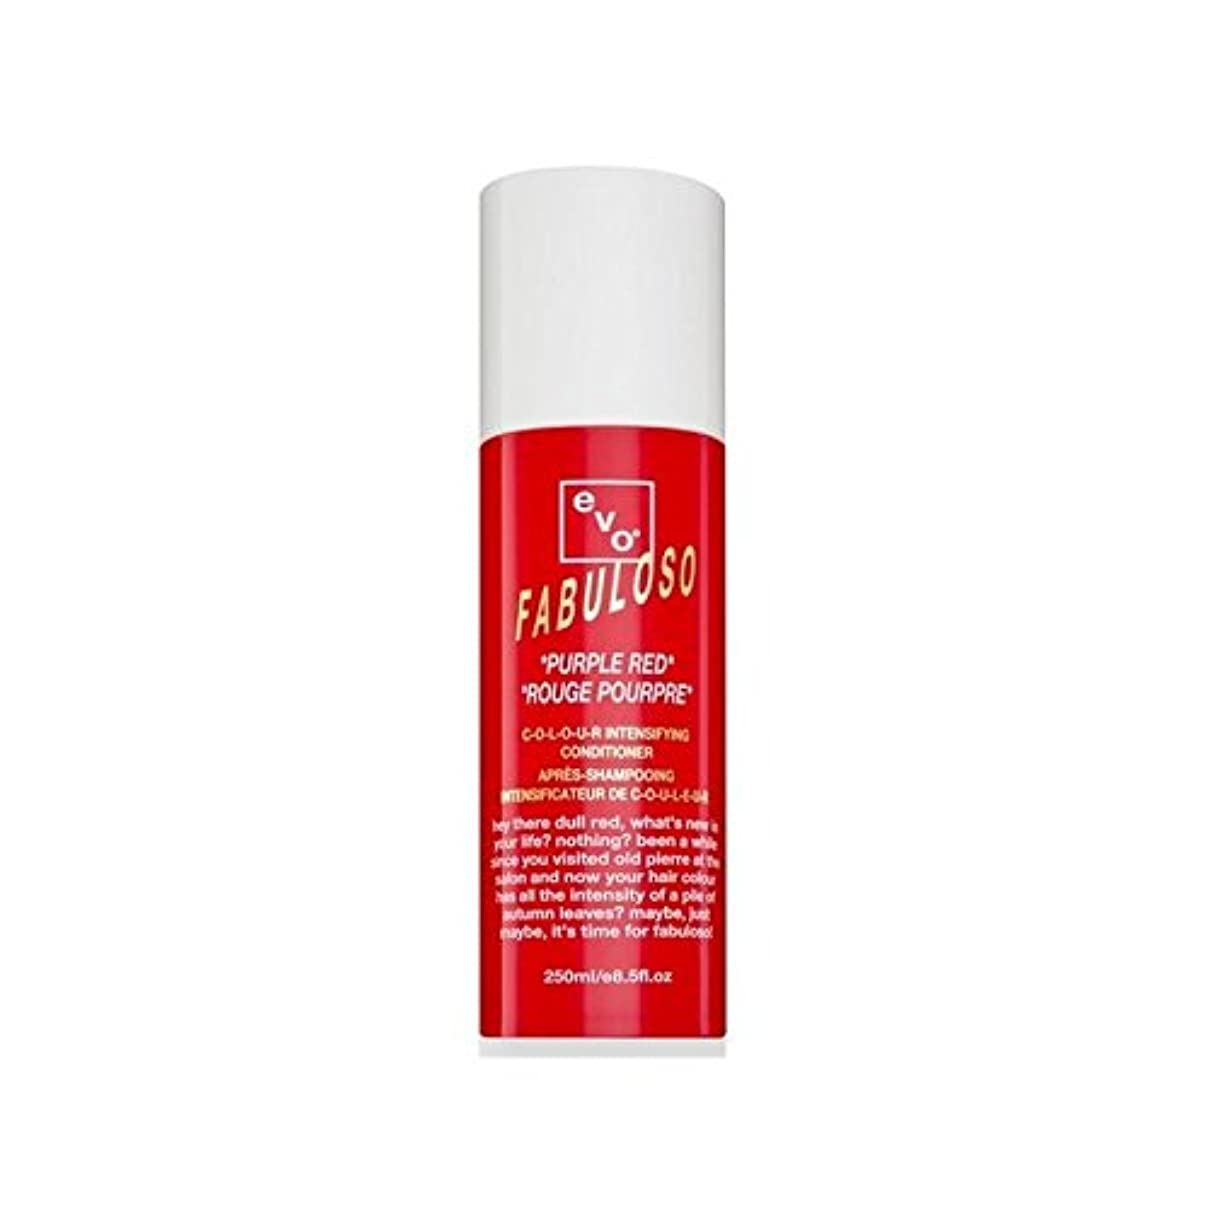 Evo Fabuloso Colour Intensifying Conditioner Purple Red (250ml) (Pack of 6) - コンディショナー赤紫色(250ミリリットル)を強化 色 x6 [...